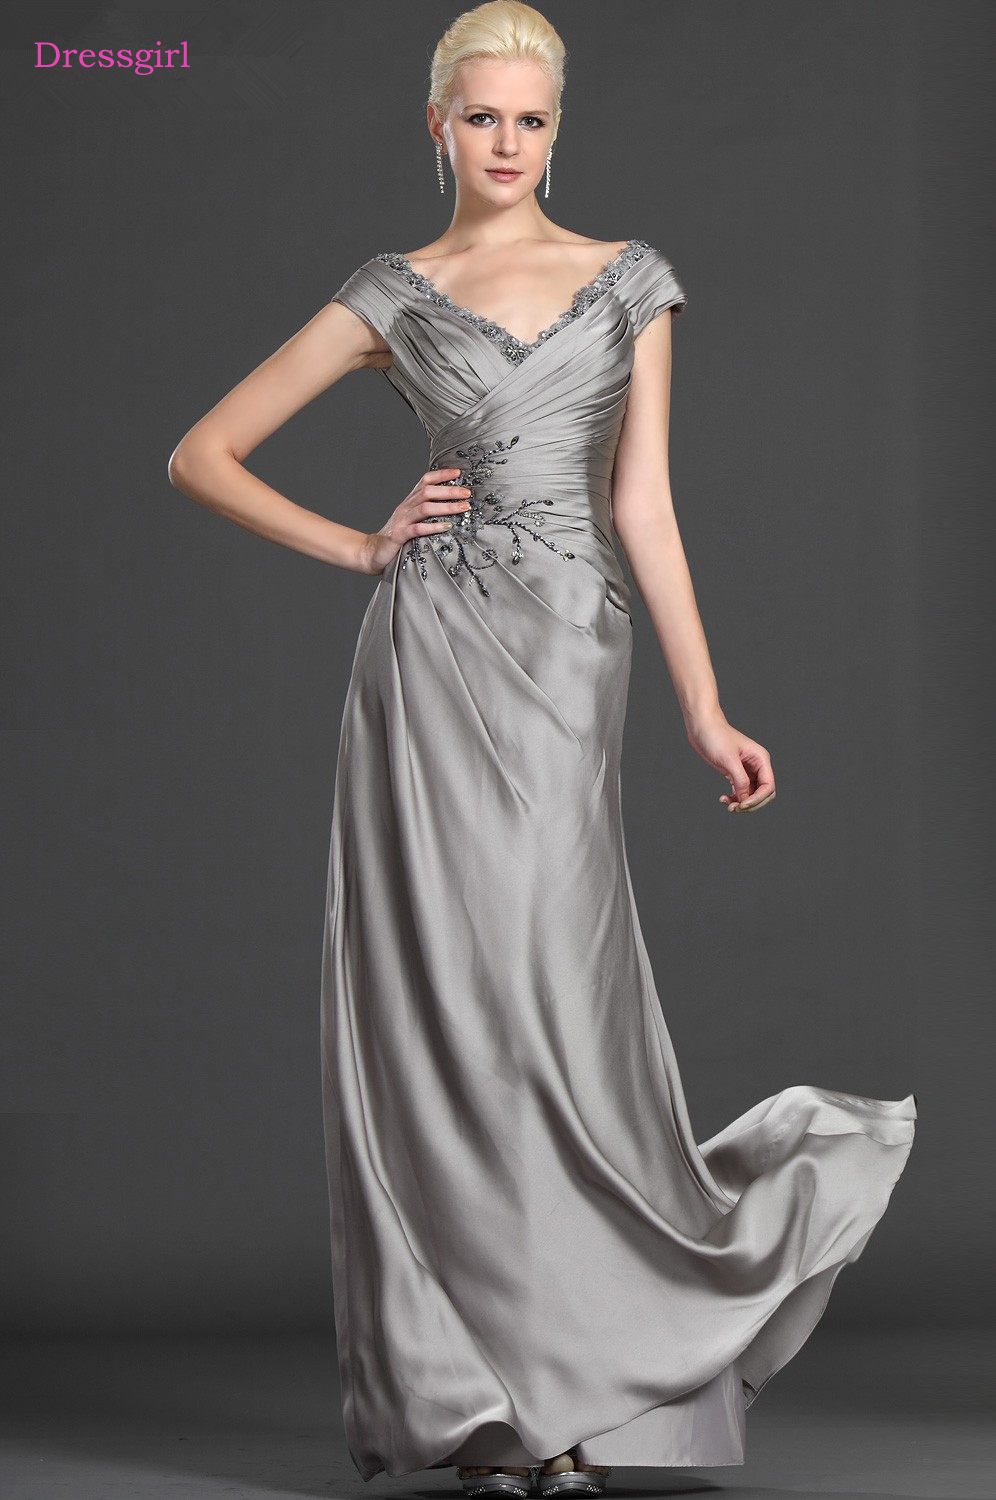 Gray 2019 Mother Of The Bride Dresses A-line V-neck Cap Sleeves Chiffon Beaded Long Elegant Groom Mother Dresses Wedding